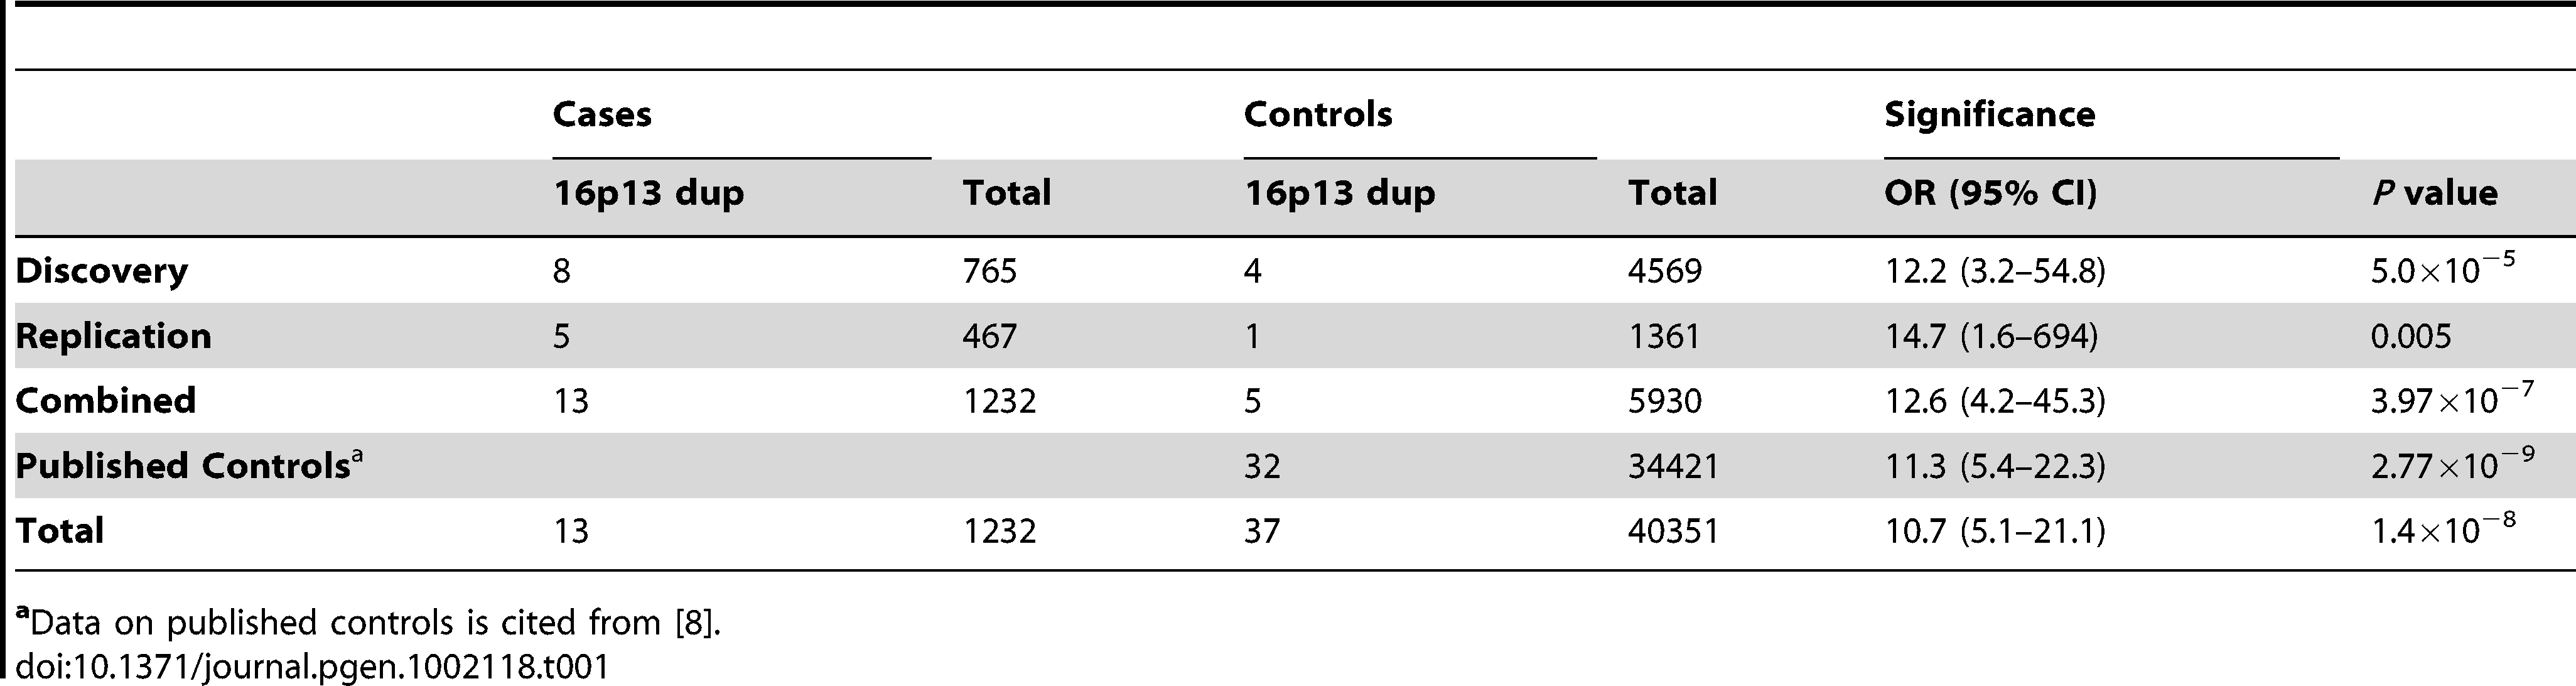 Frequency of 16p13 duplications in cases and controls.